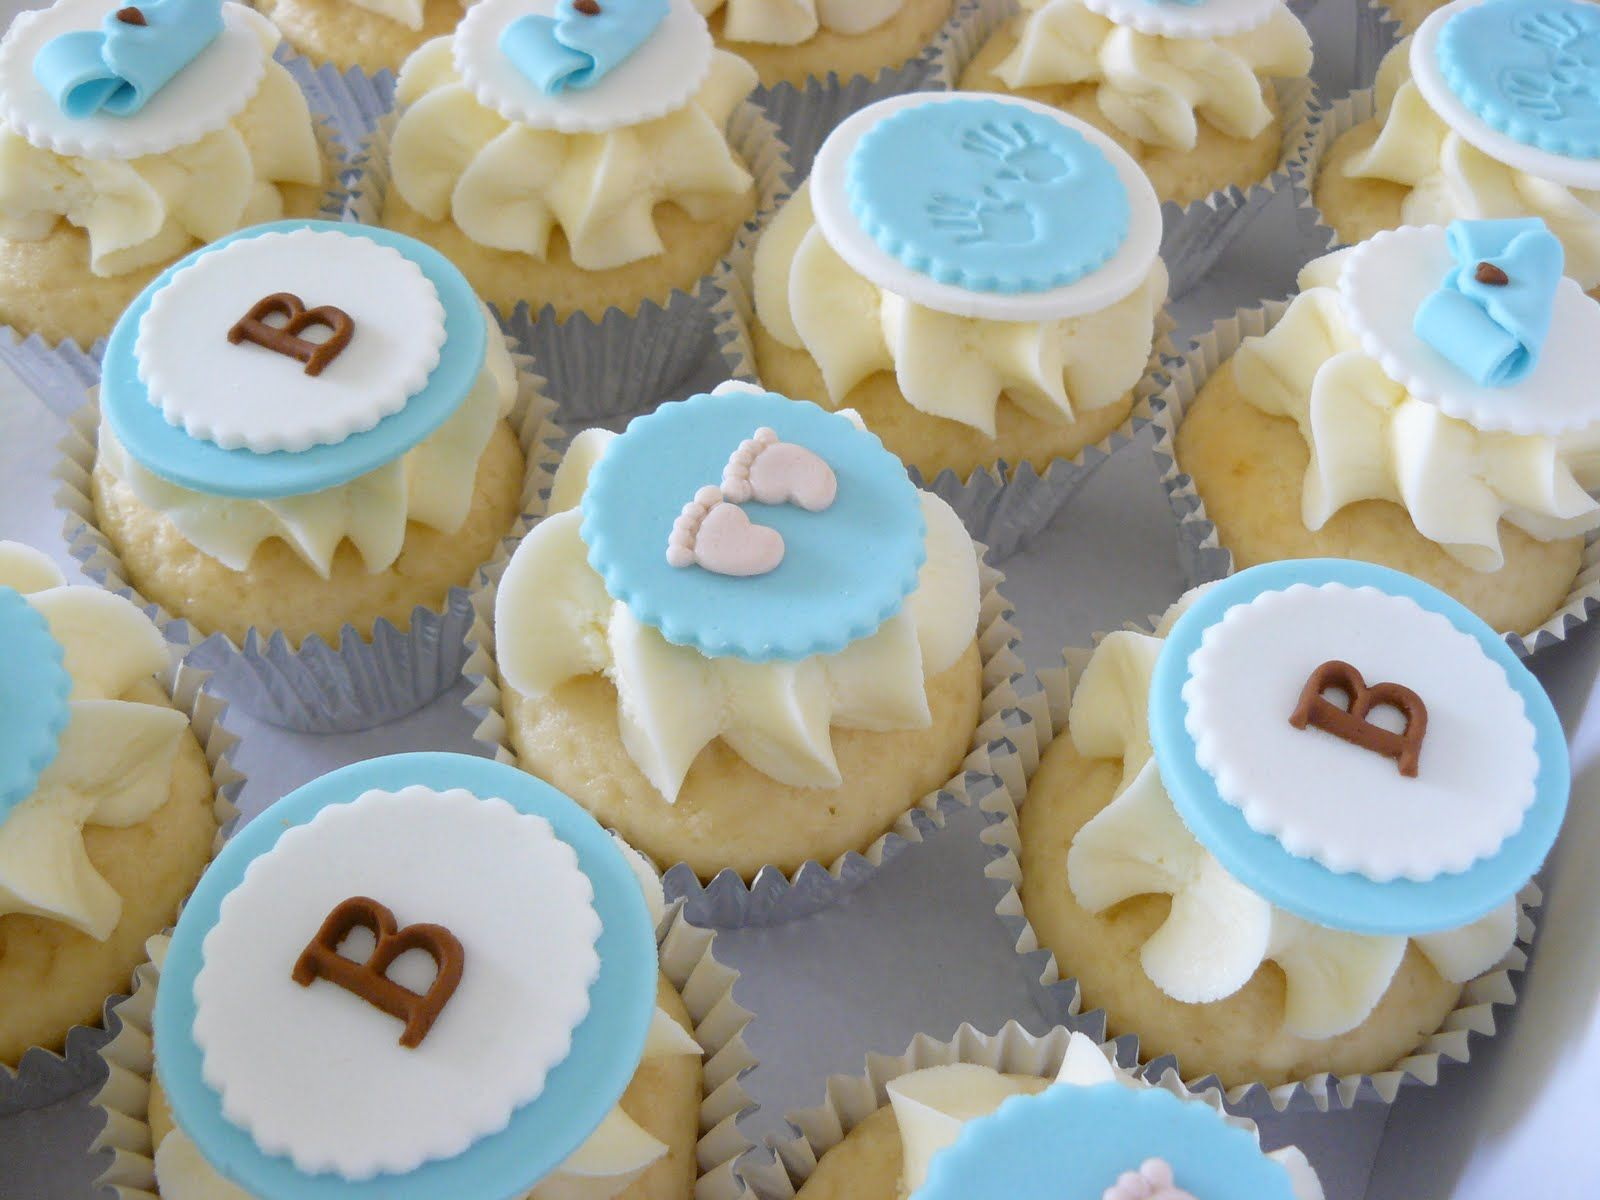 baby shower cupcakes decorations the cup cake taste cupcakes baby shower for a